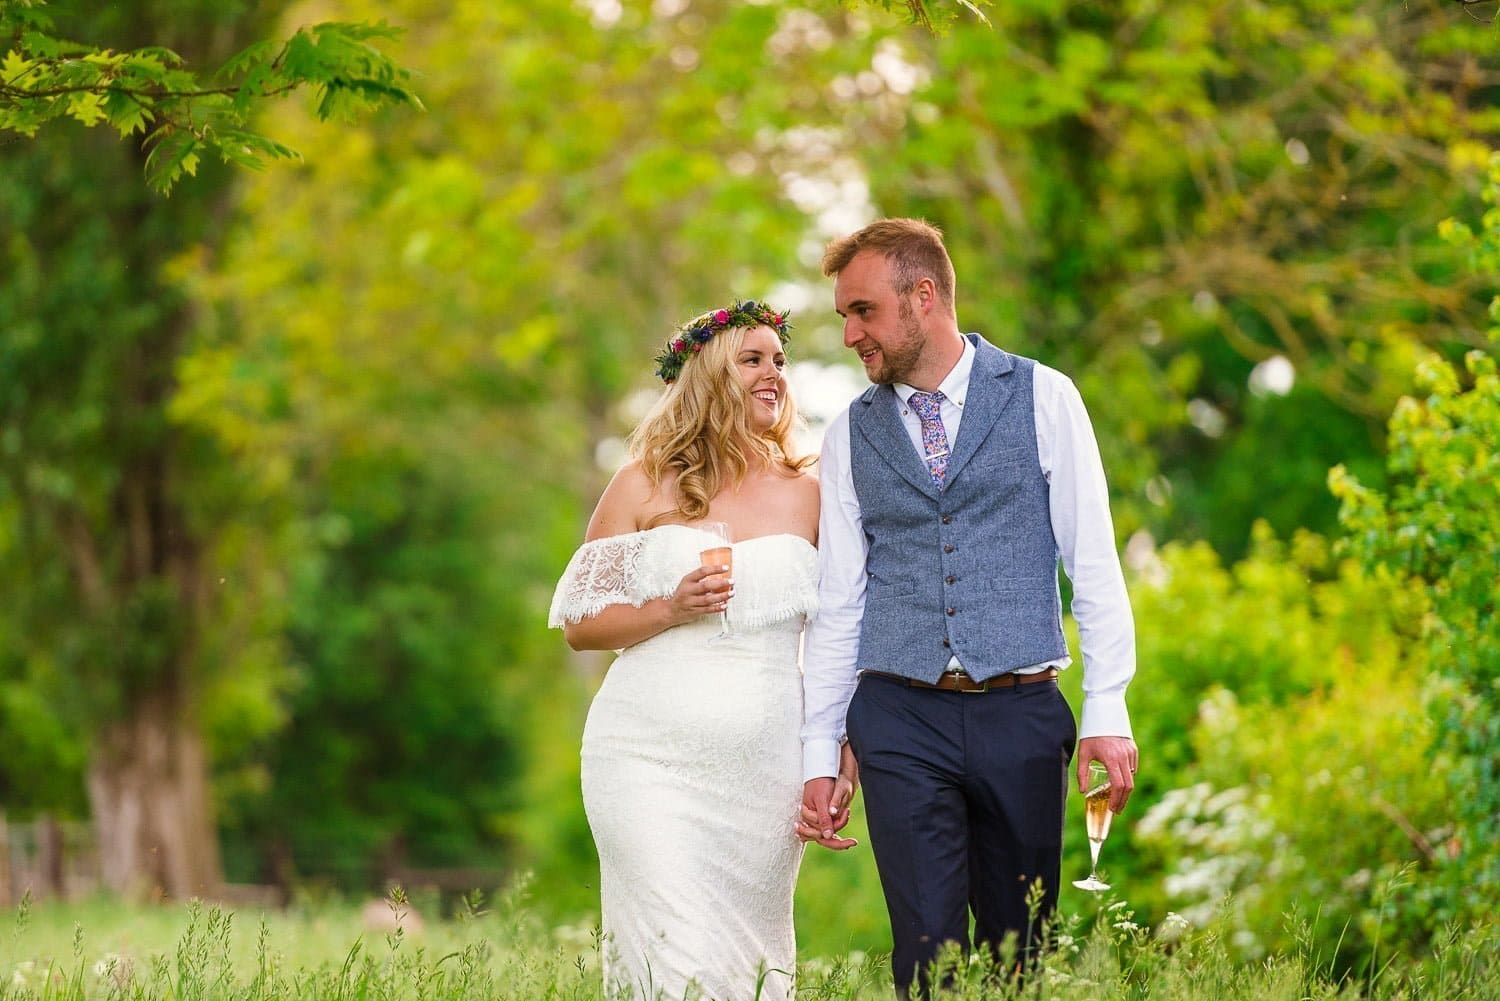 Newly weds at the Rookery Meadow festival wedding